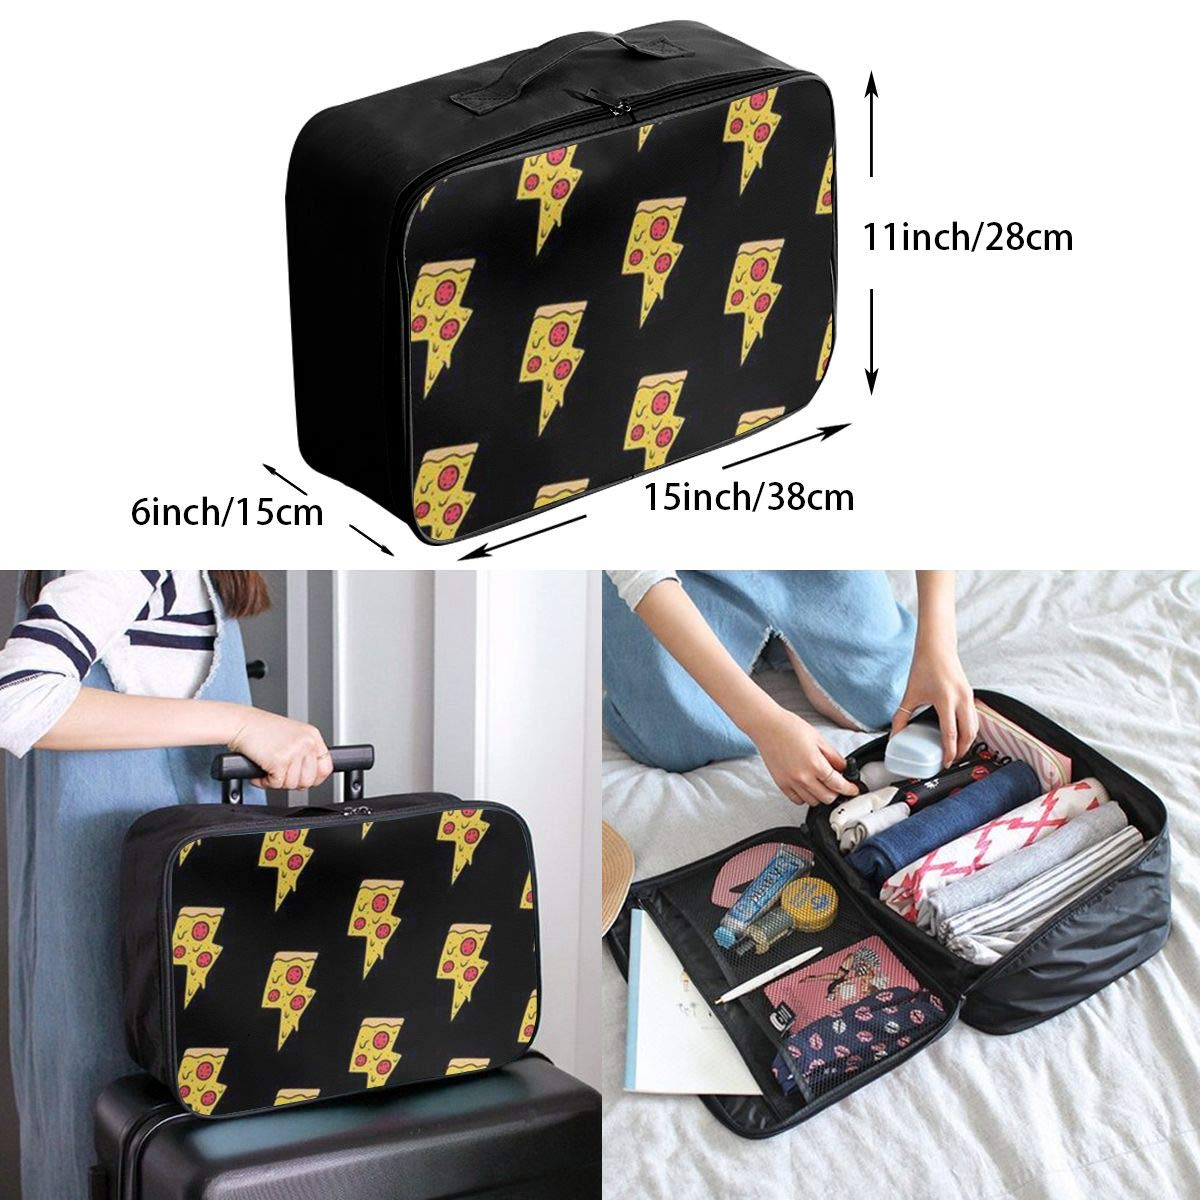 Women /& Men Foldable Travel Duffel Bag Cool Pizza For Luggage Gym Sports